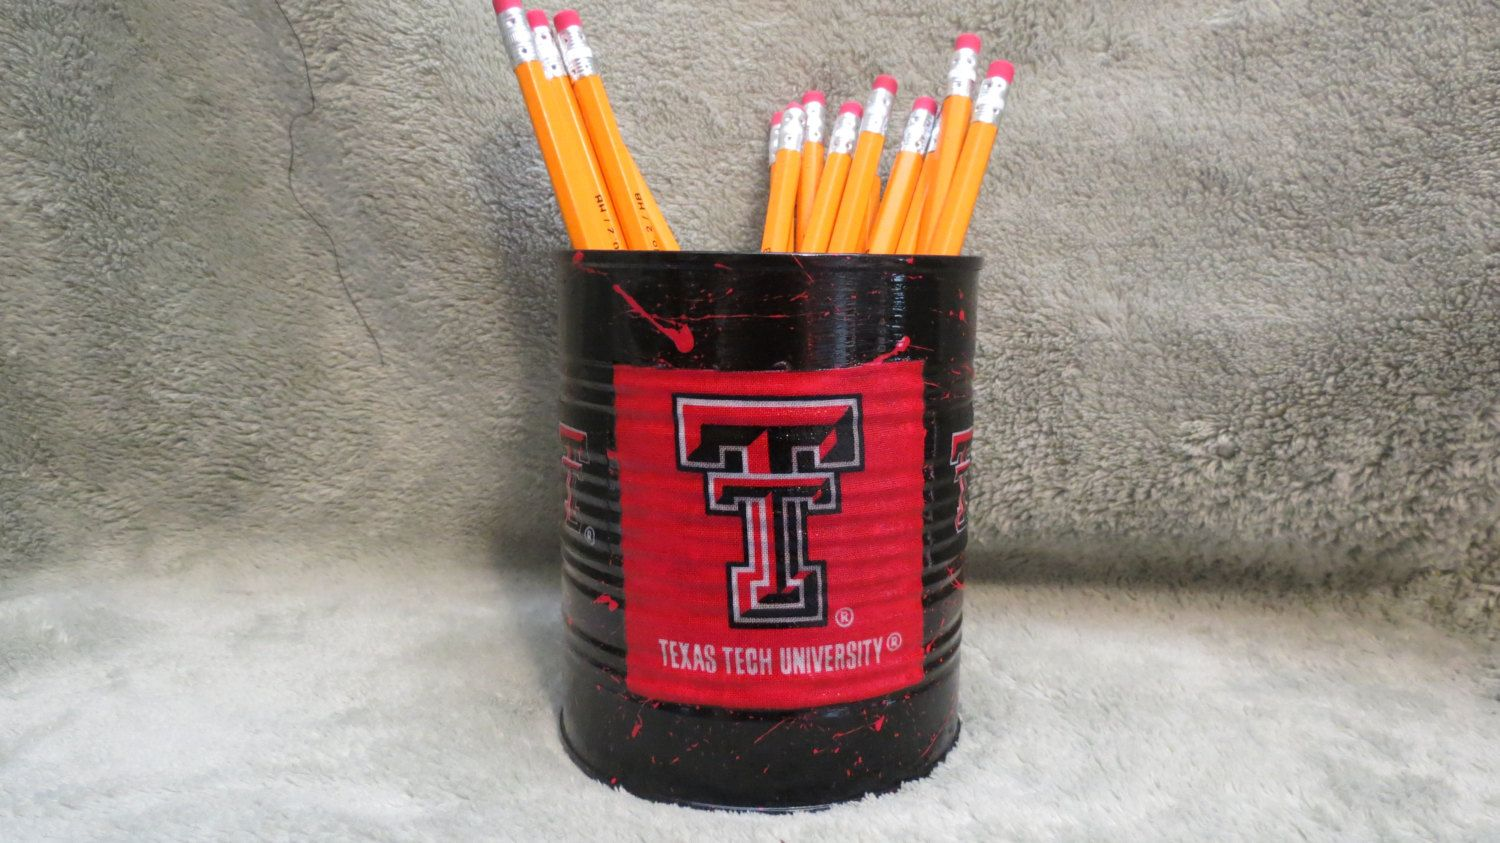 TEXAS TECH RAIDERS Can Holder/Pencils/Pens/Brushes/Flowers/Candy/Money/Gift Holder by KreationsGalore on Etsy